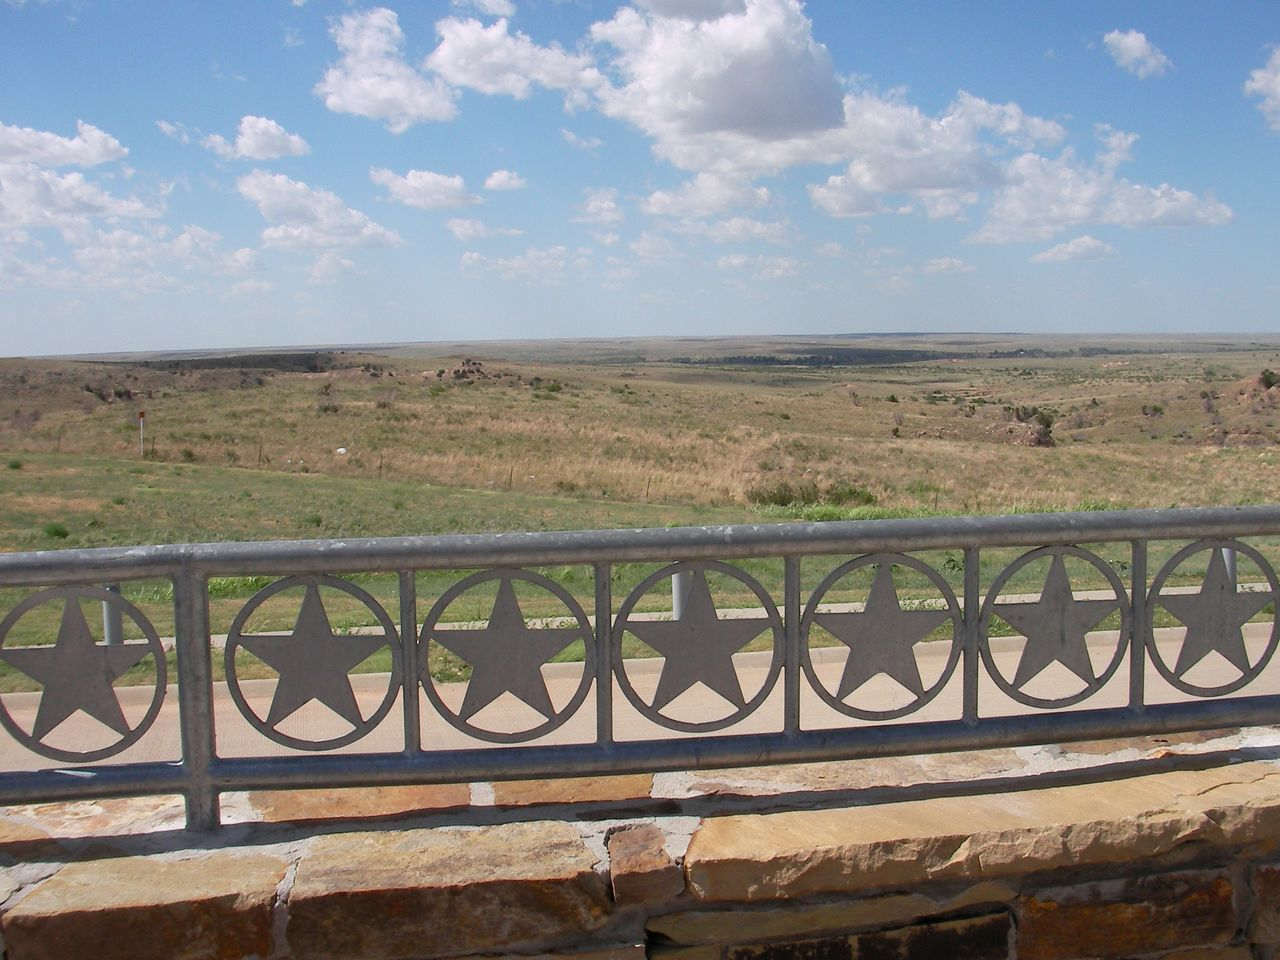 Architecture Beauty In Nature Bridge - Man Made Structure Day Desert Horizon Over Water Landscape Nature No People Outdoors Railing Railing Scenics Sea Sky Stars Texas Texas Landscape Texas Skies United States USA USA Photos USAtrip Water Wheelchair Access